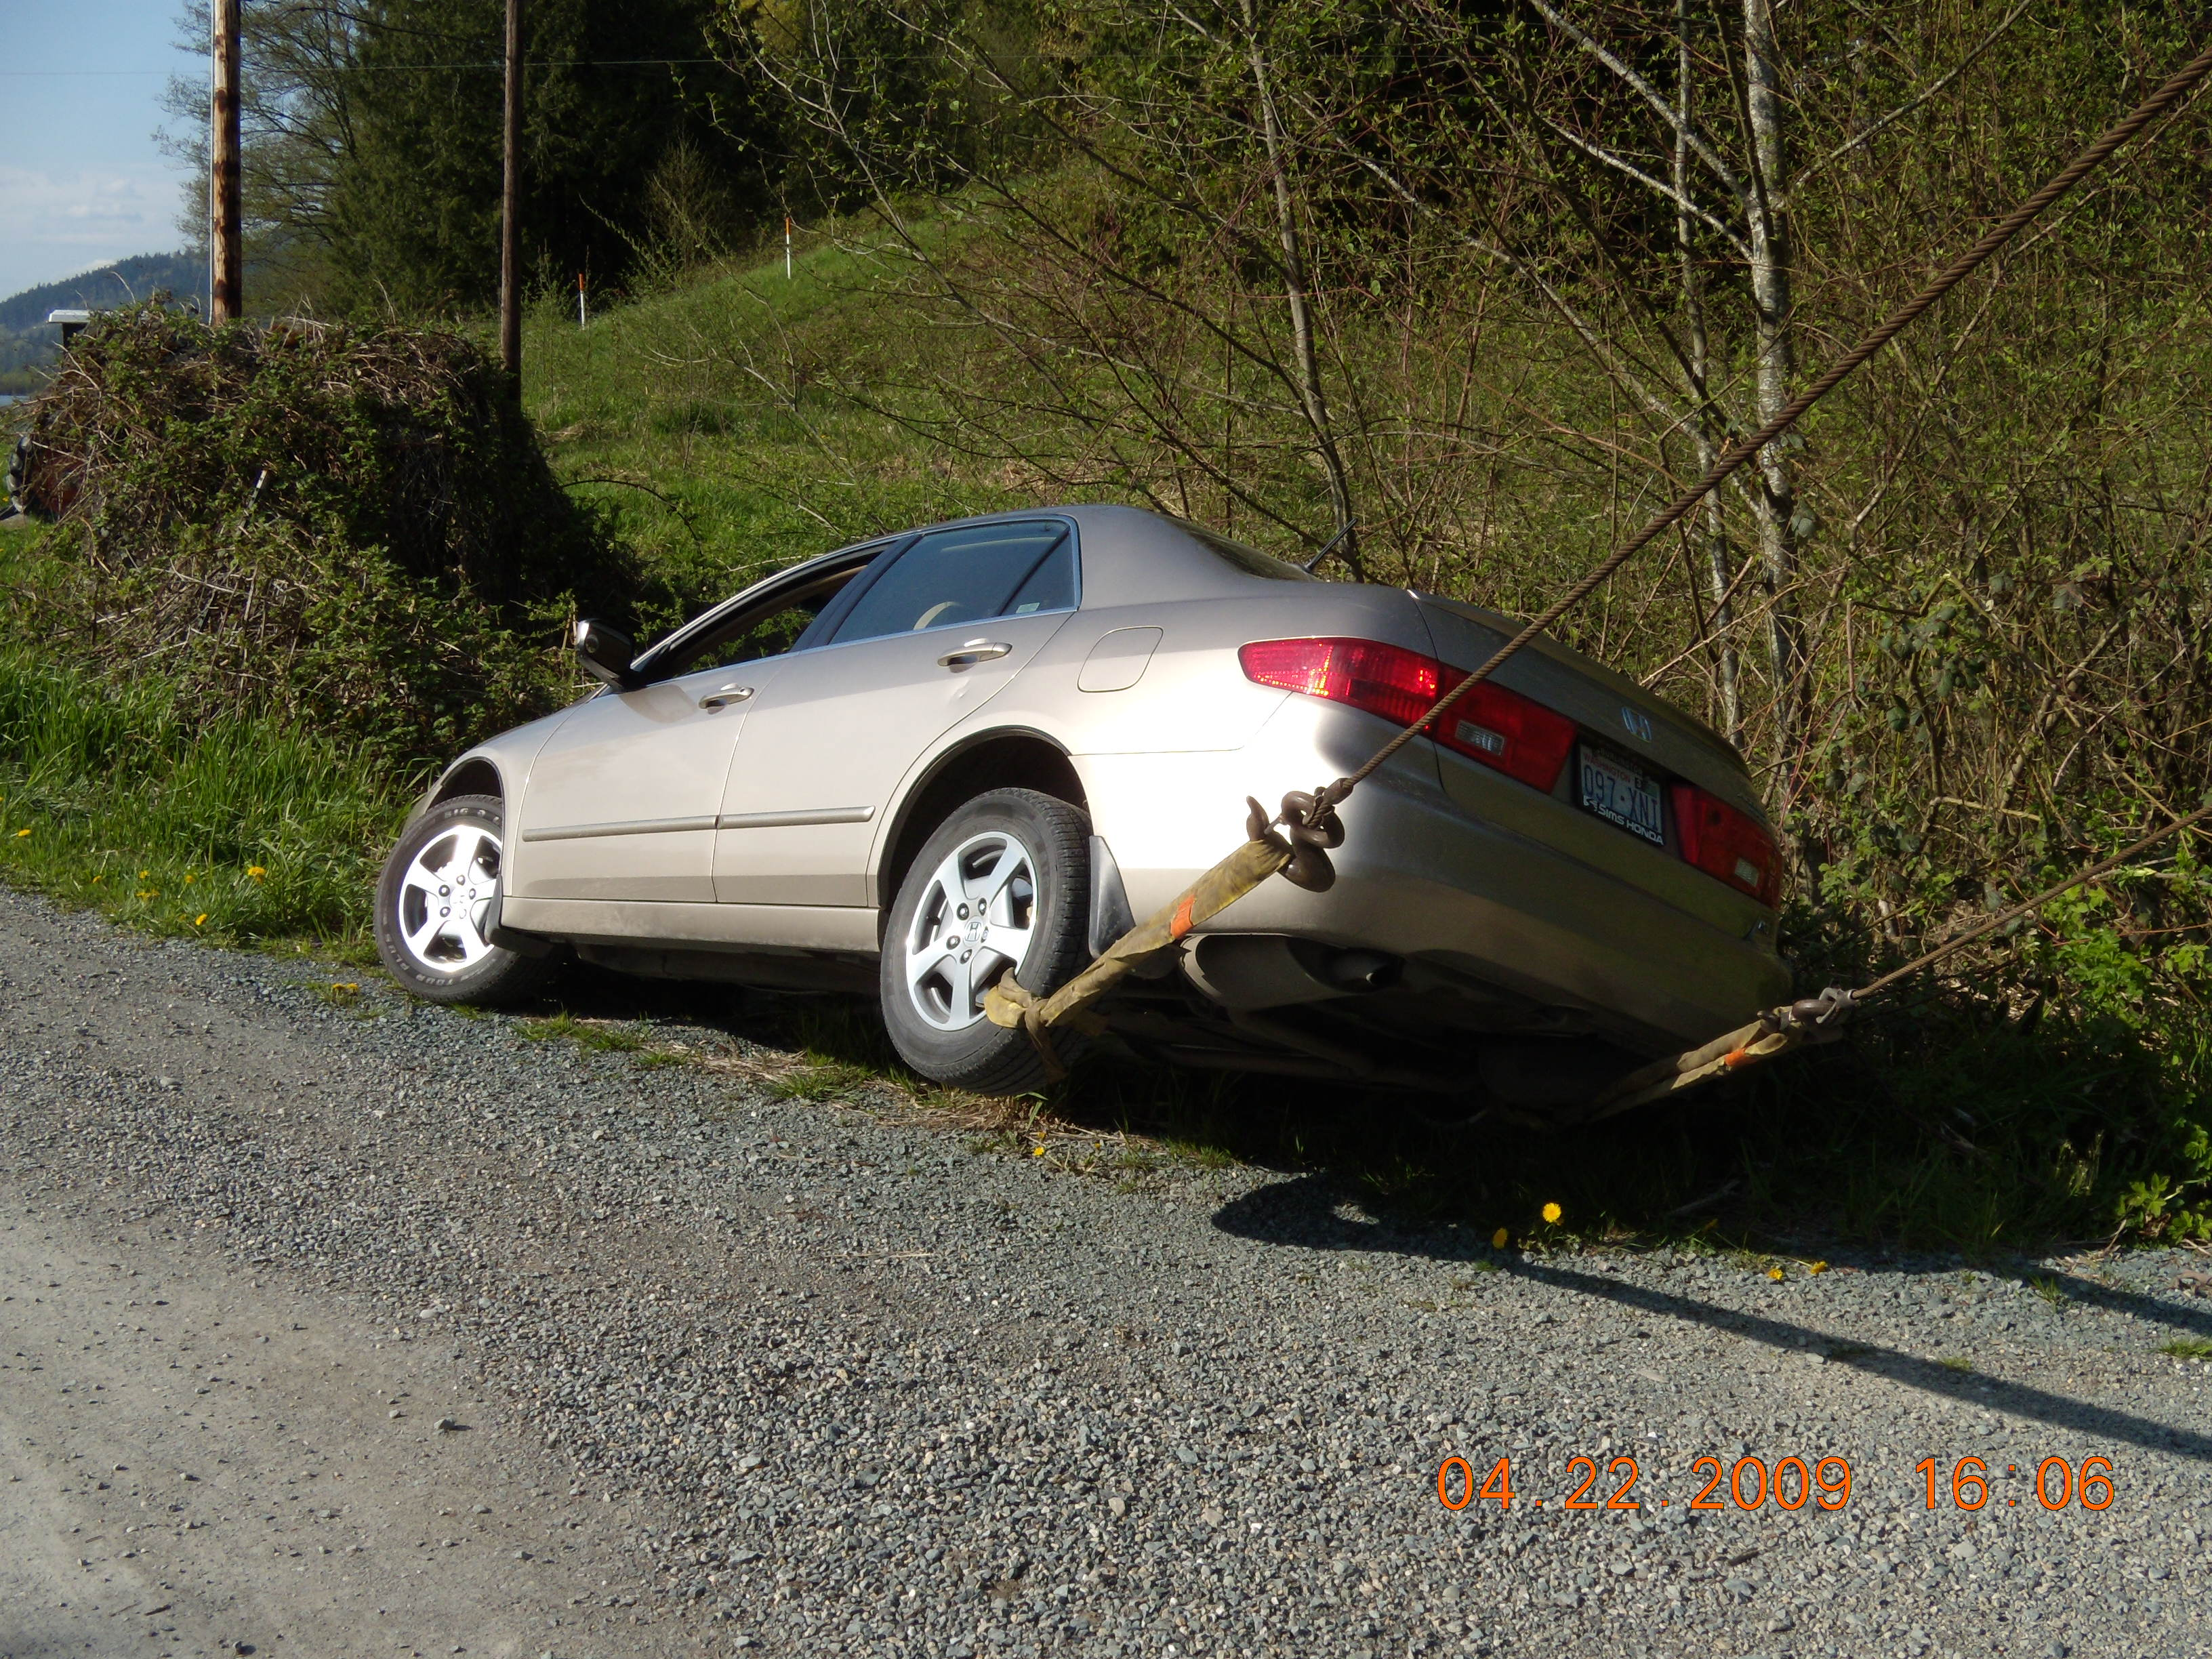 Carl's Towing image 3